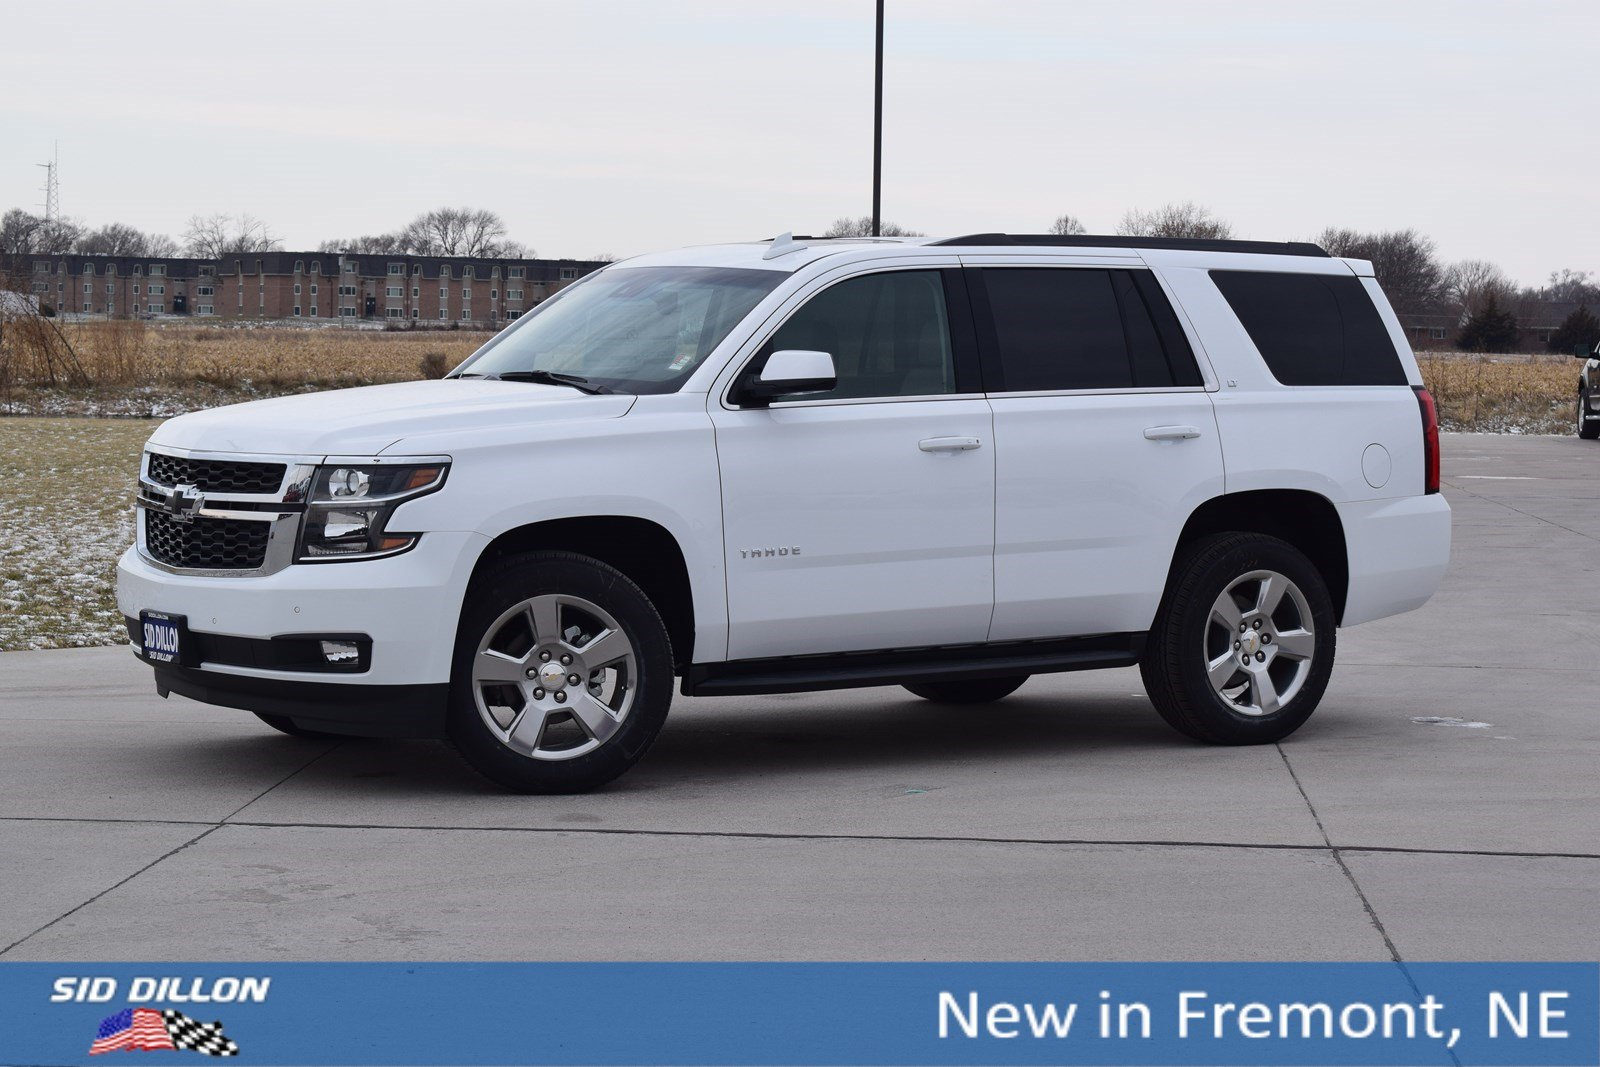 New 2019 Chevrolet Tahoe Lt Suv In Fremont 1t19430 Sid Dillon